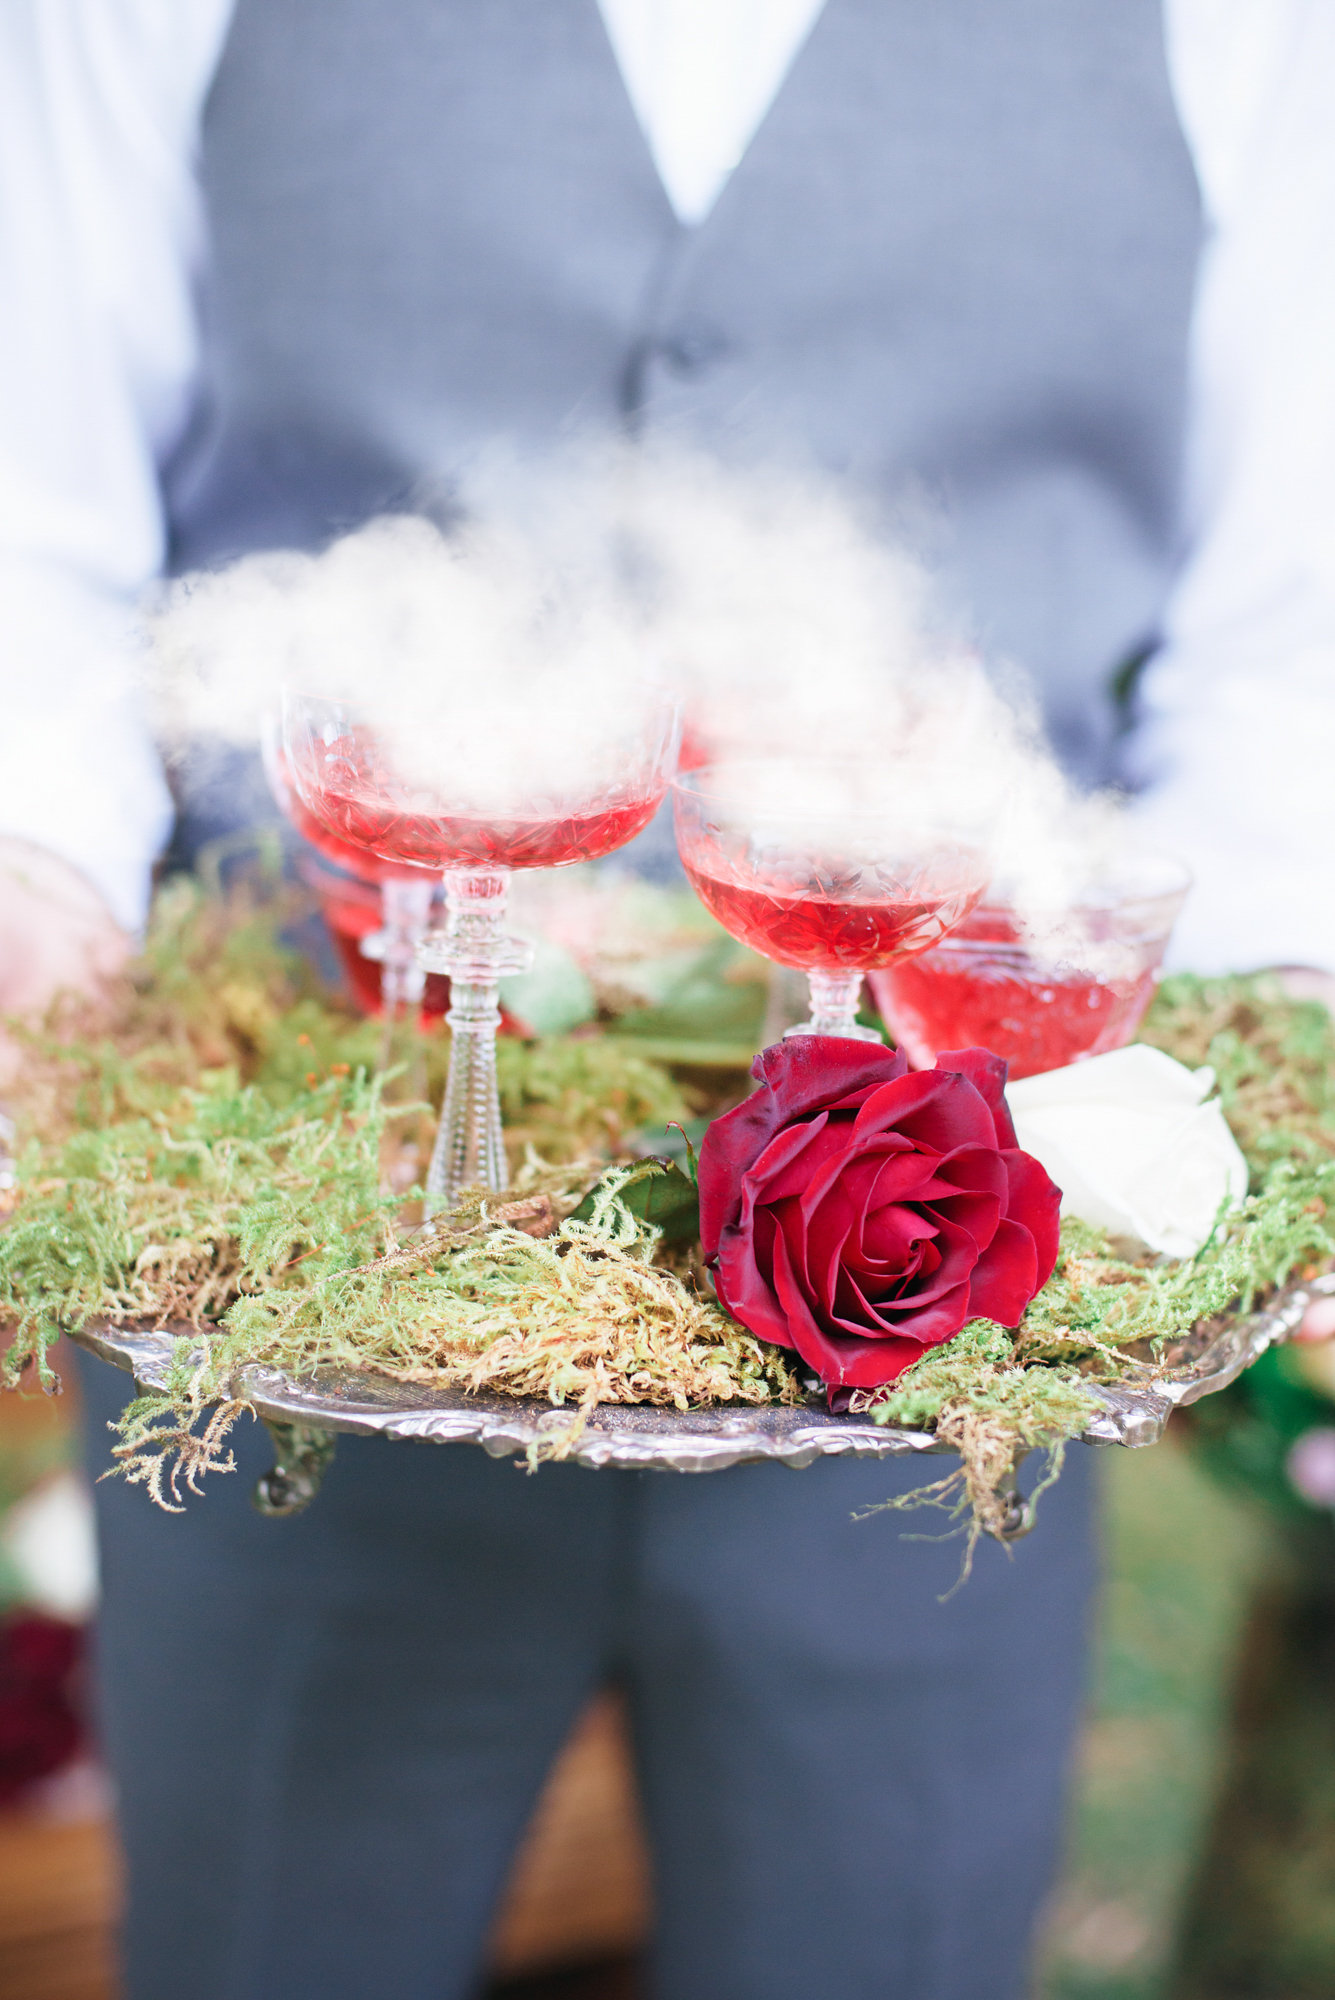 Smoky dry ice wedding cocktails halloween wedding ideas